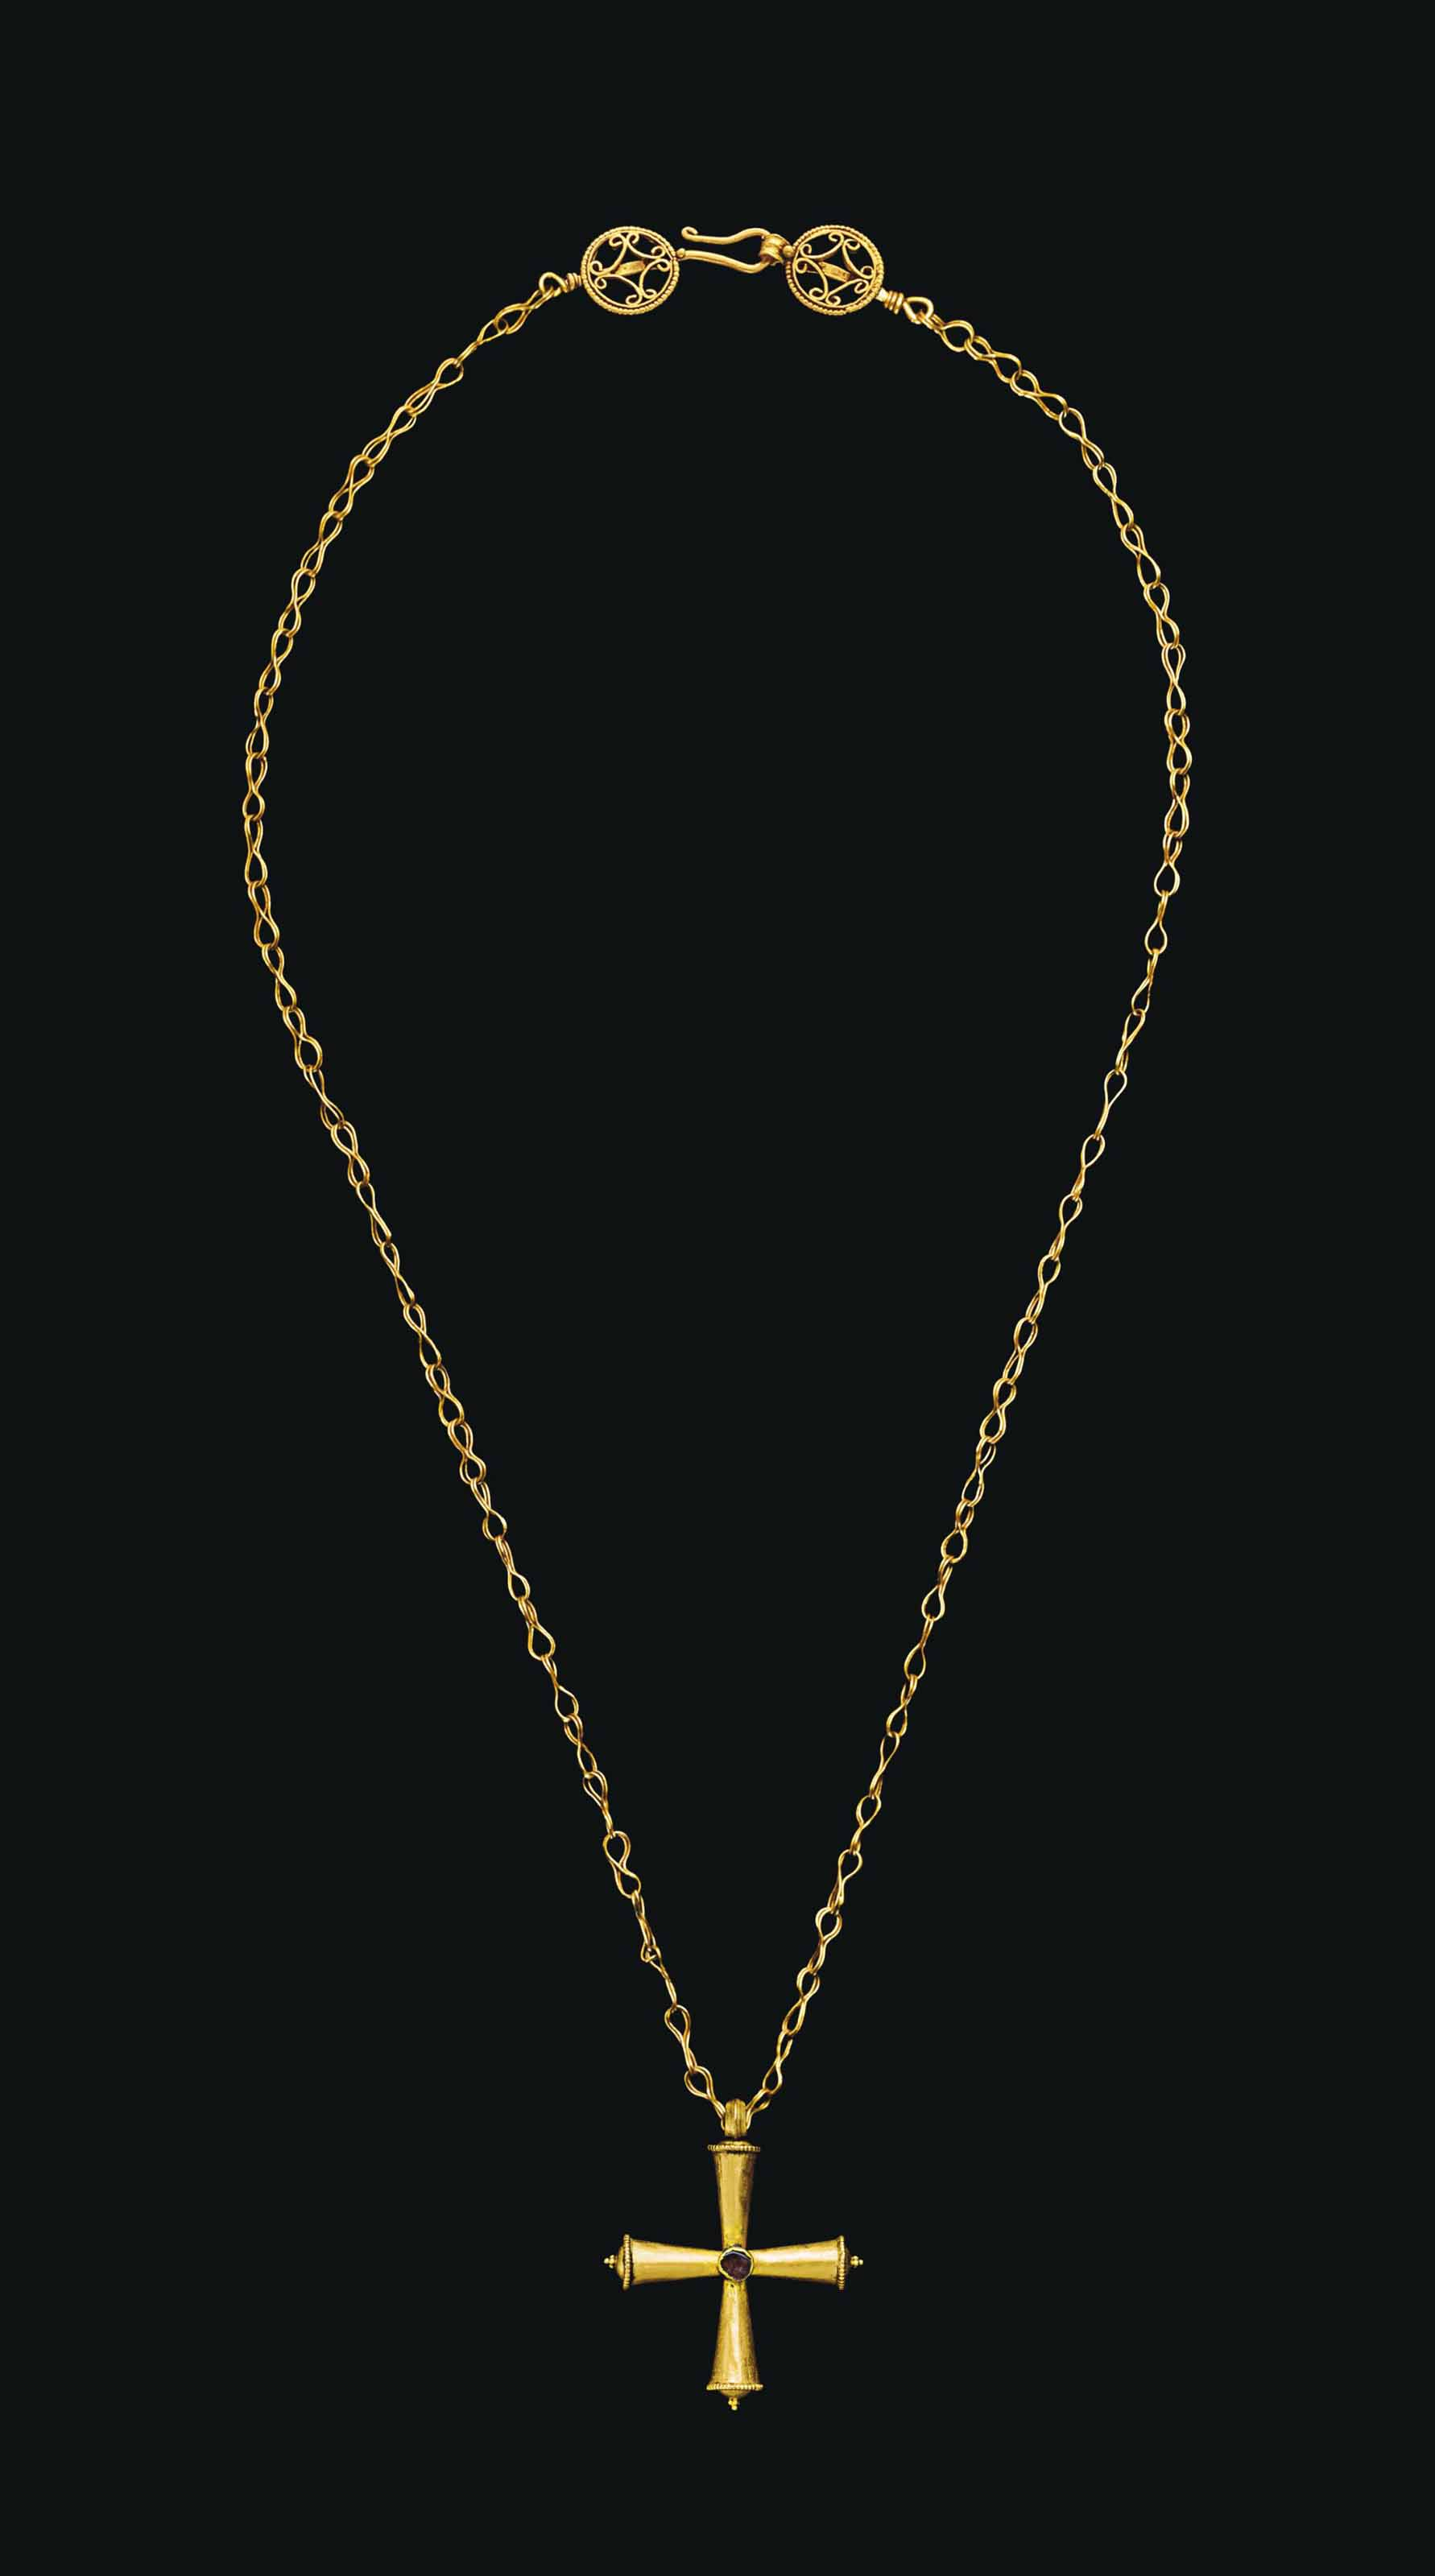 A BYZANTINE GOLD NECKLACE WITH A GOLD AND GARNET PENDANT CROSS